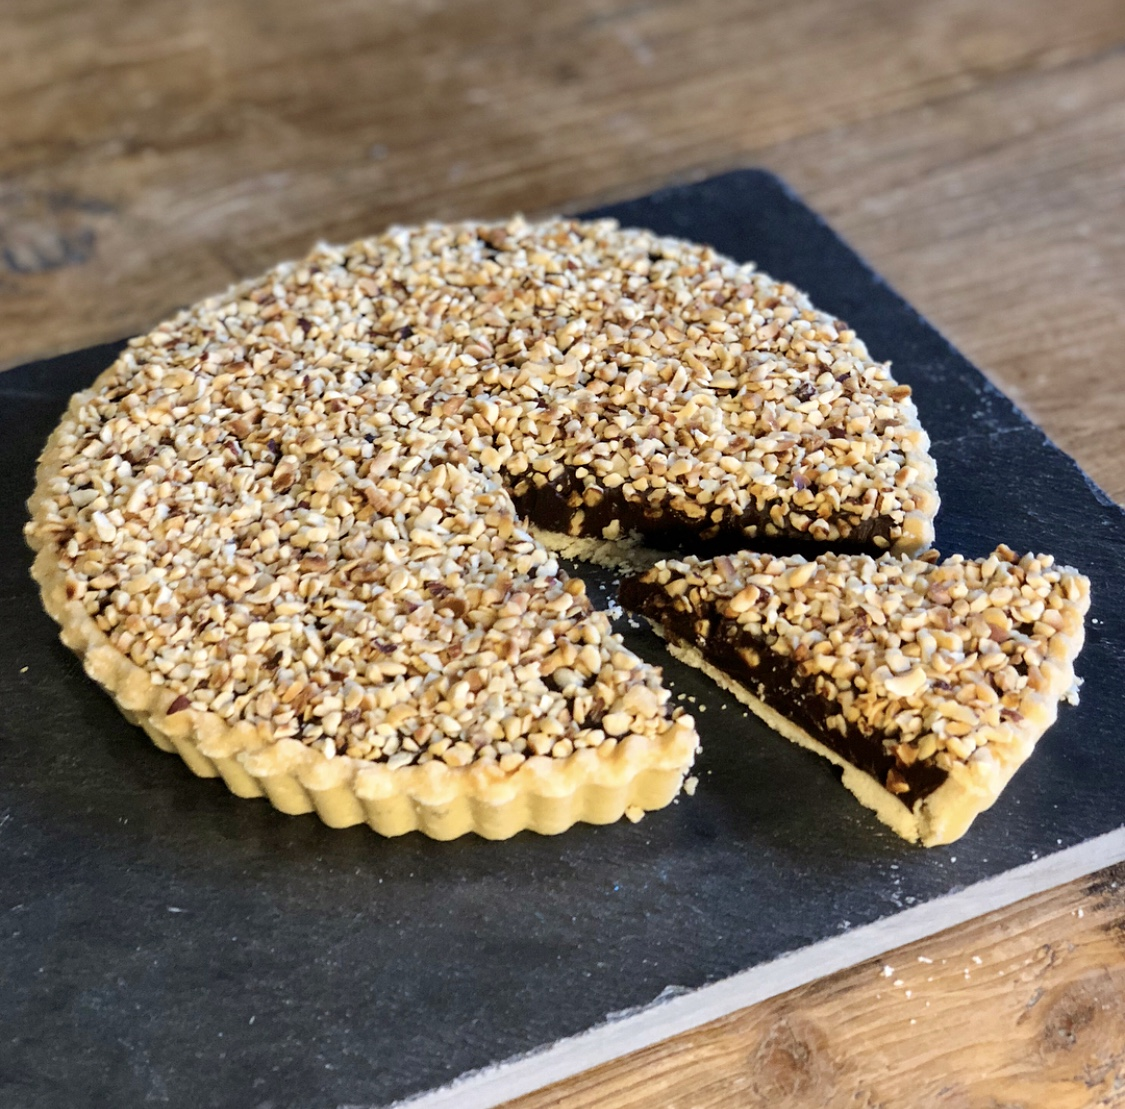 Rich, Smooth and Divine Chocolate Tart